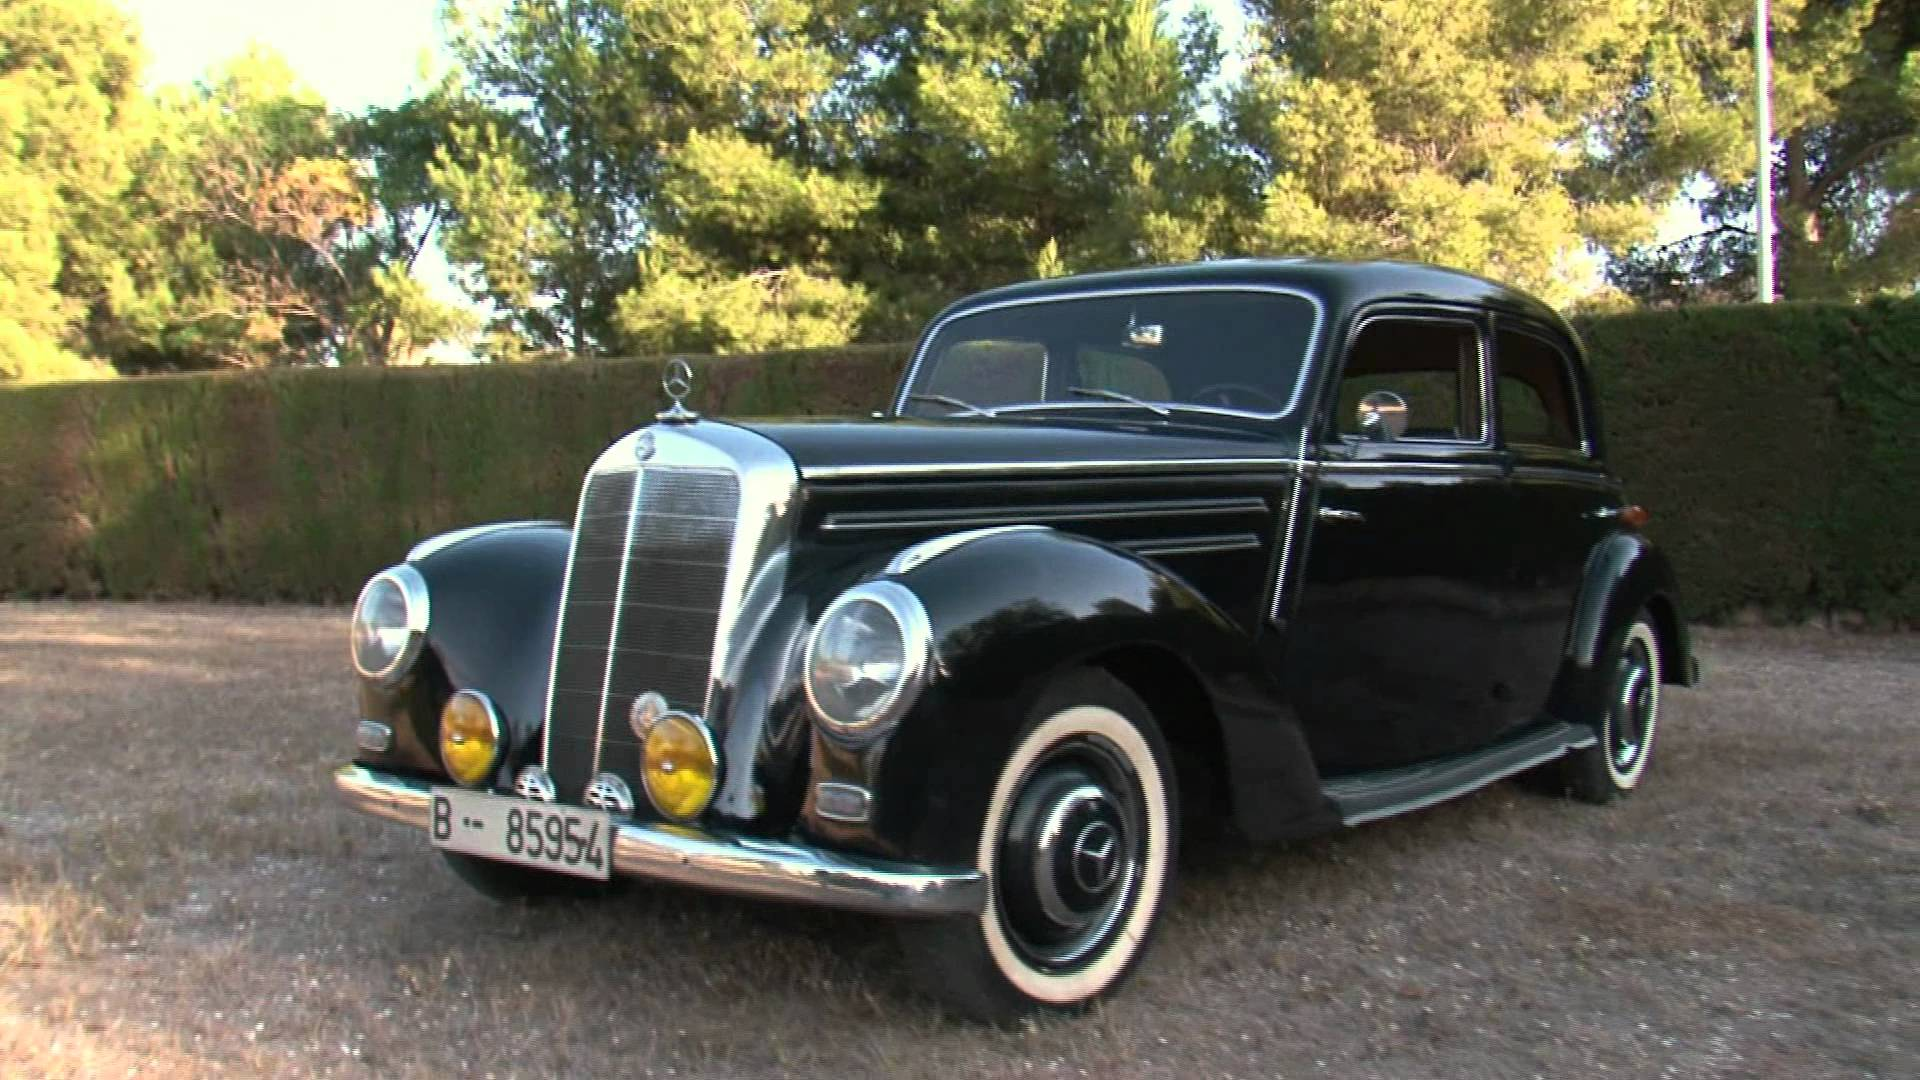 1952 mercedes benz 220 information and photos momentcar for 1953 mercedes benz 220 sedan for sale